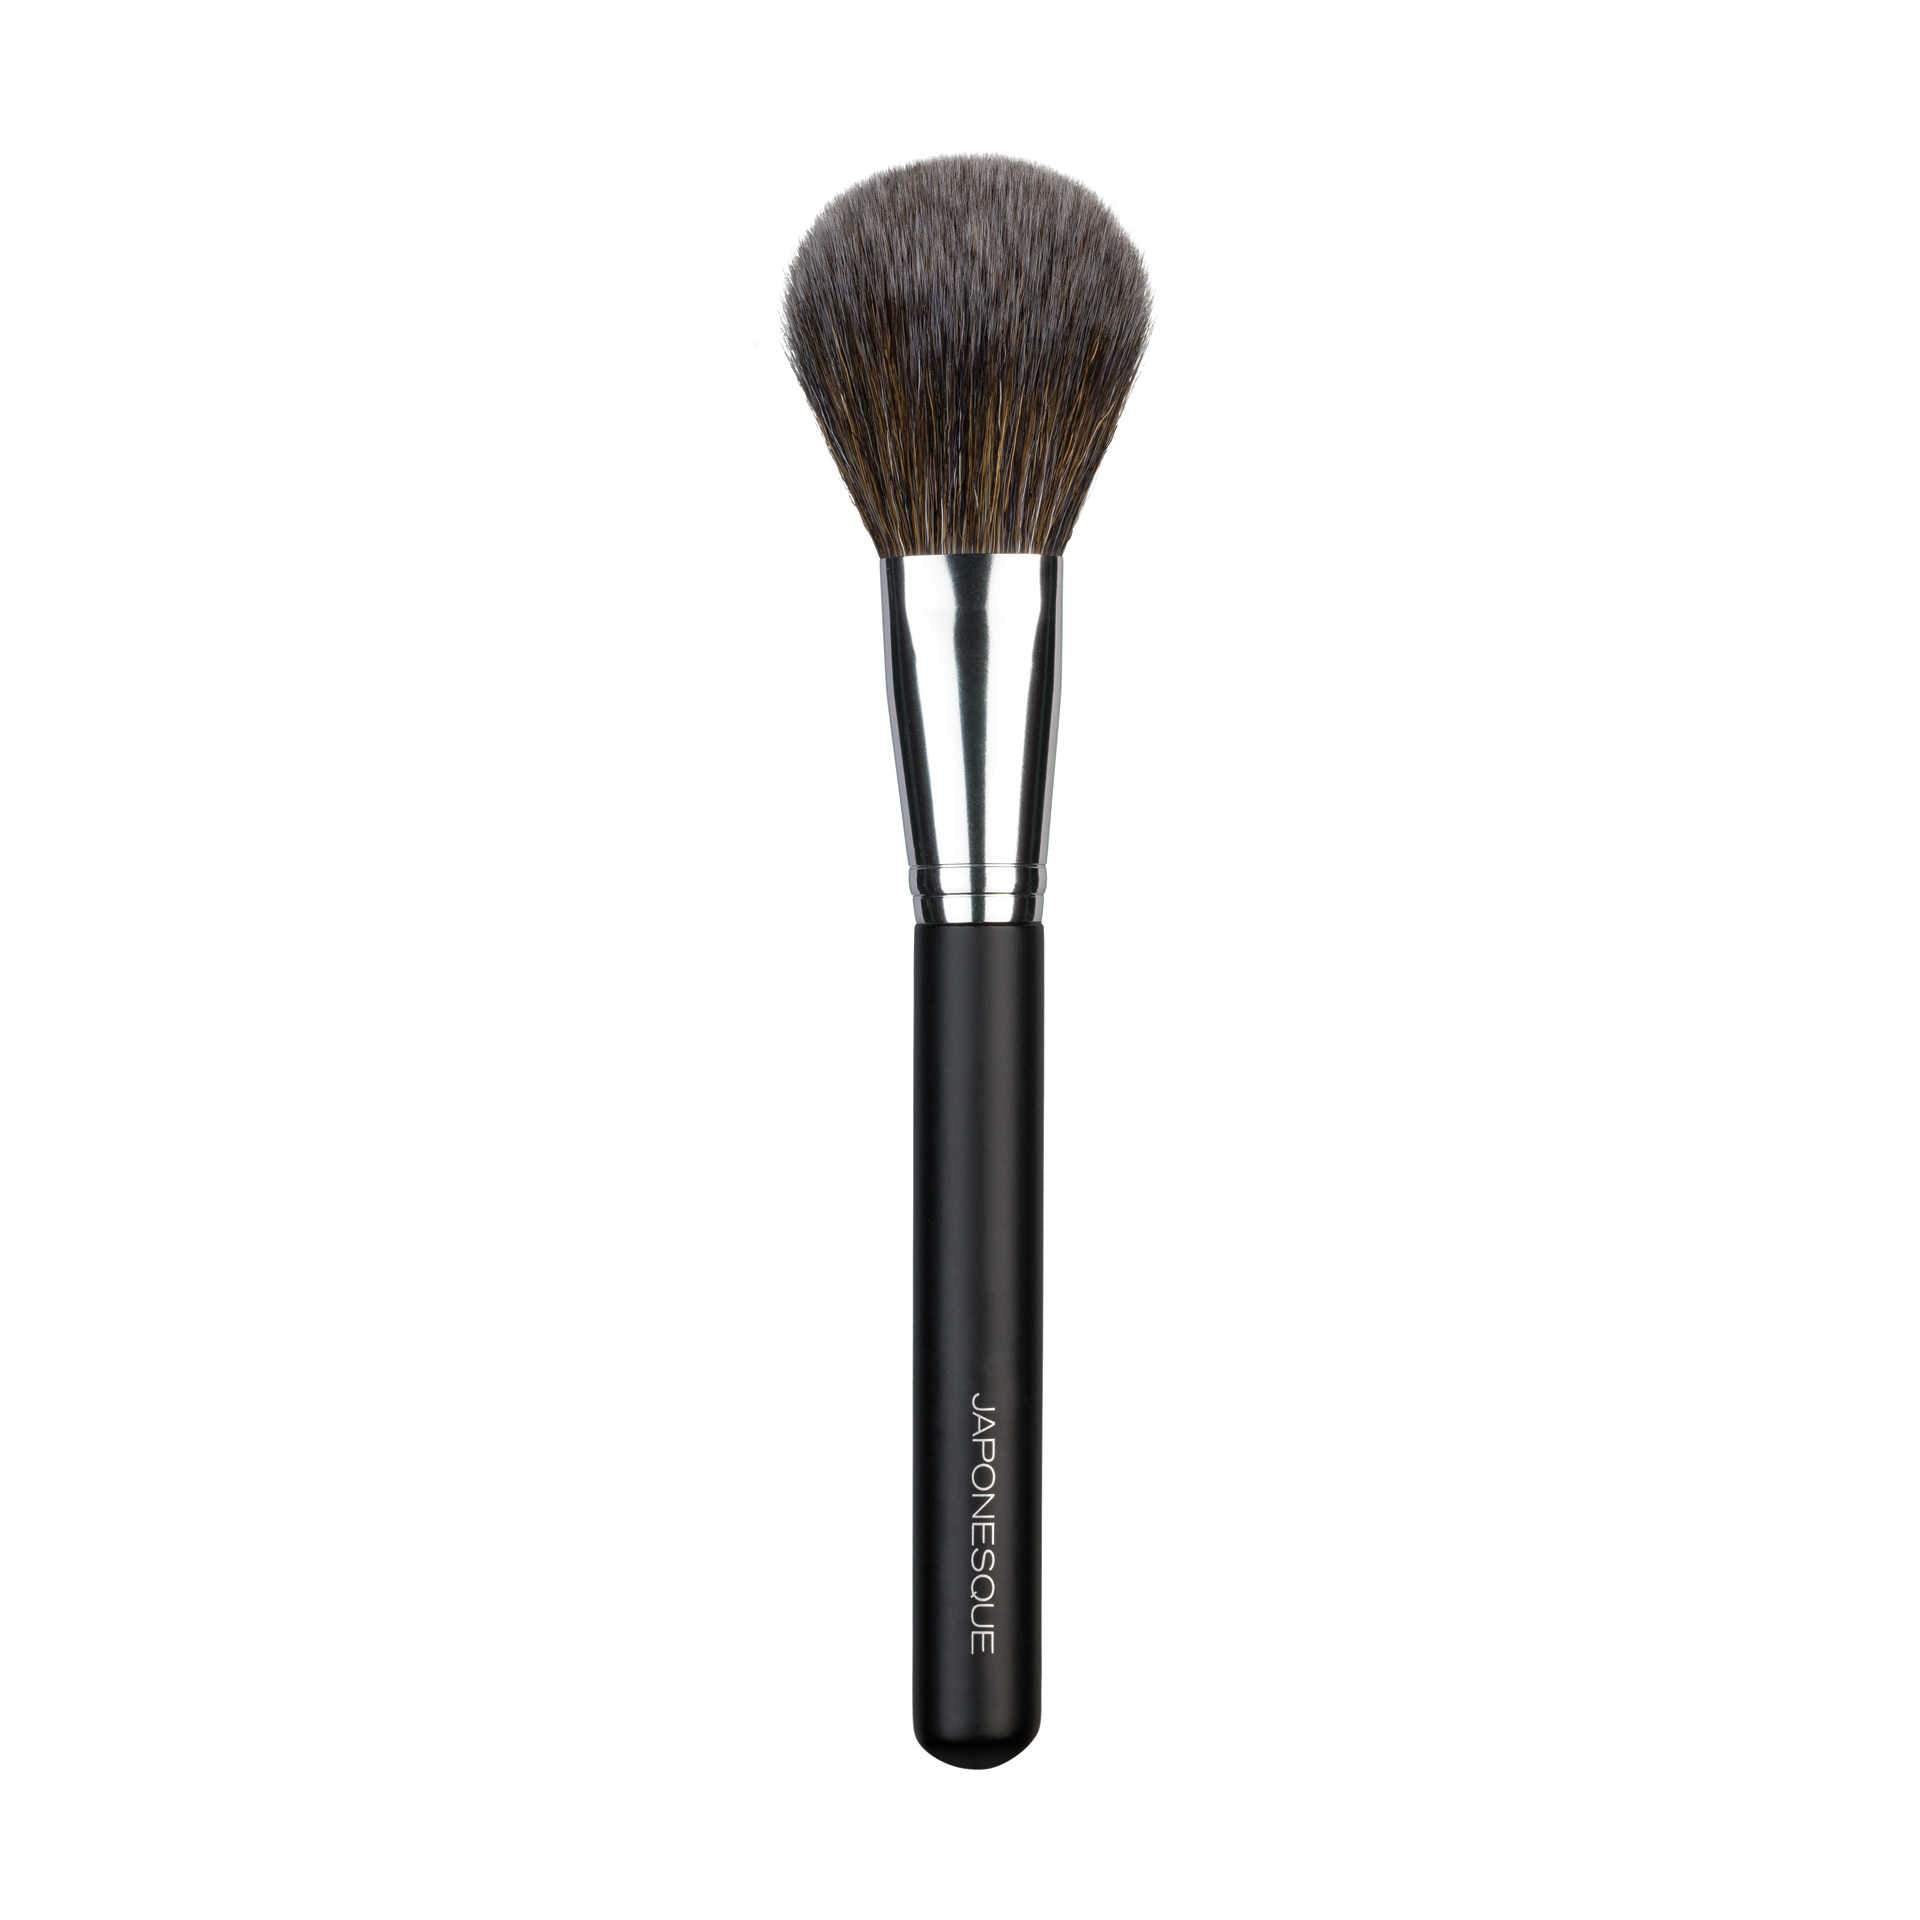 Fluff Powder Brush